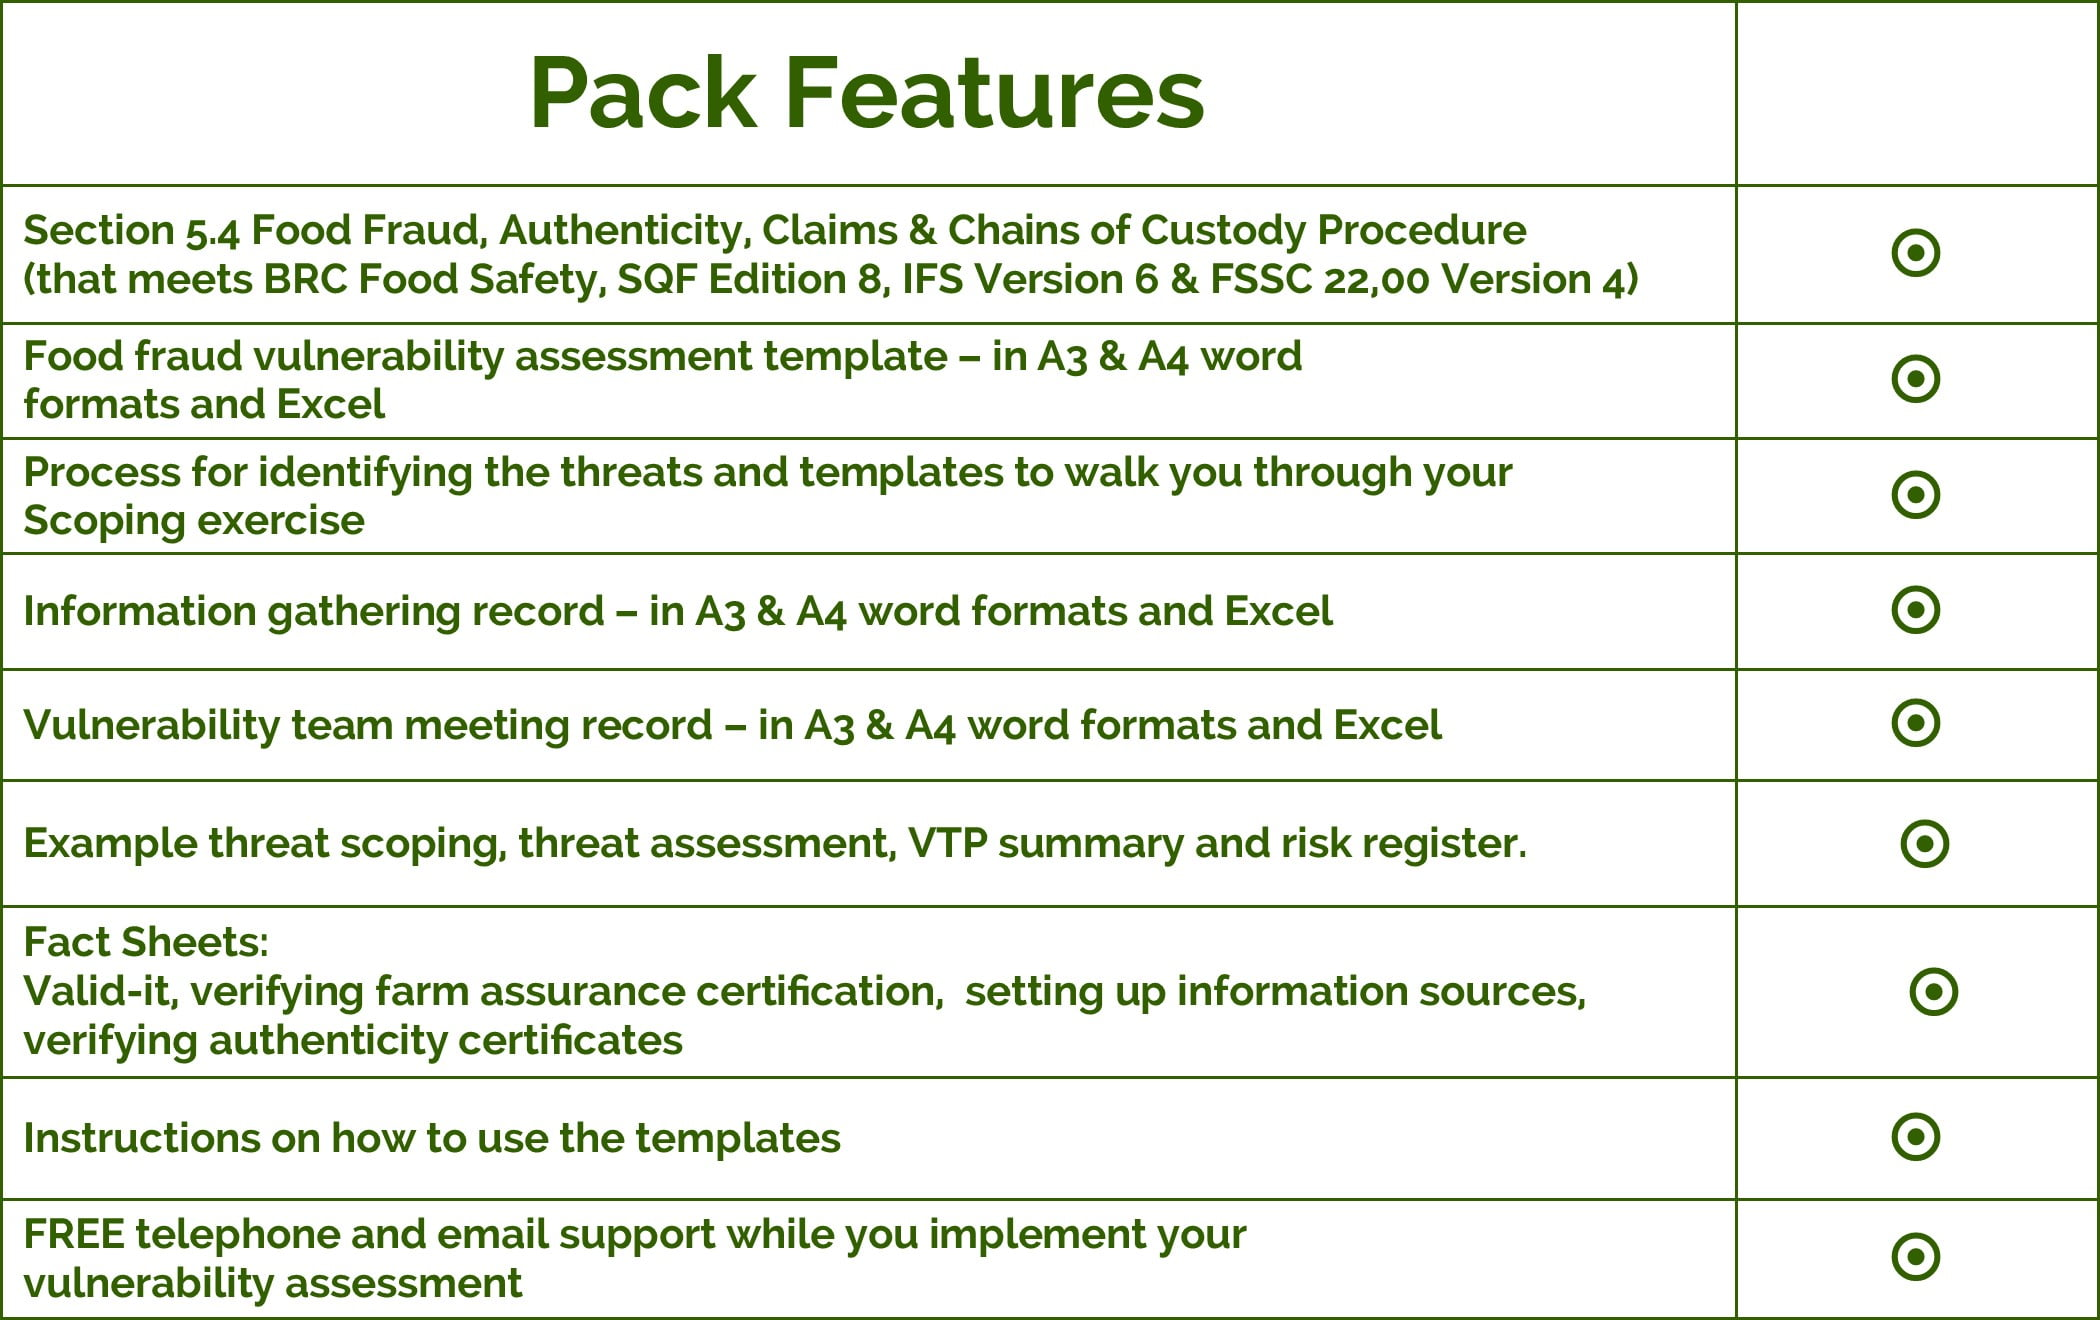 Gfsi food fraud assessment documentation packs by techni k for Threat vulnerability risk assessment template